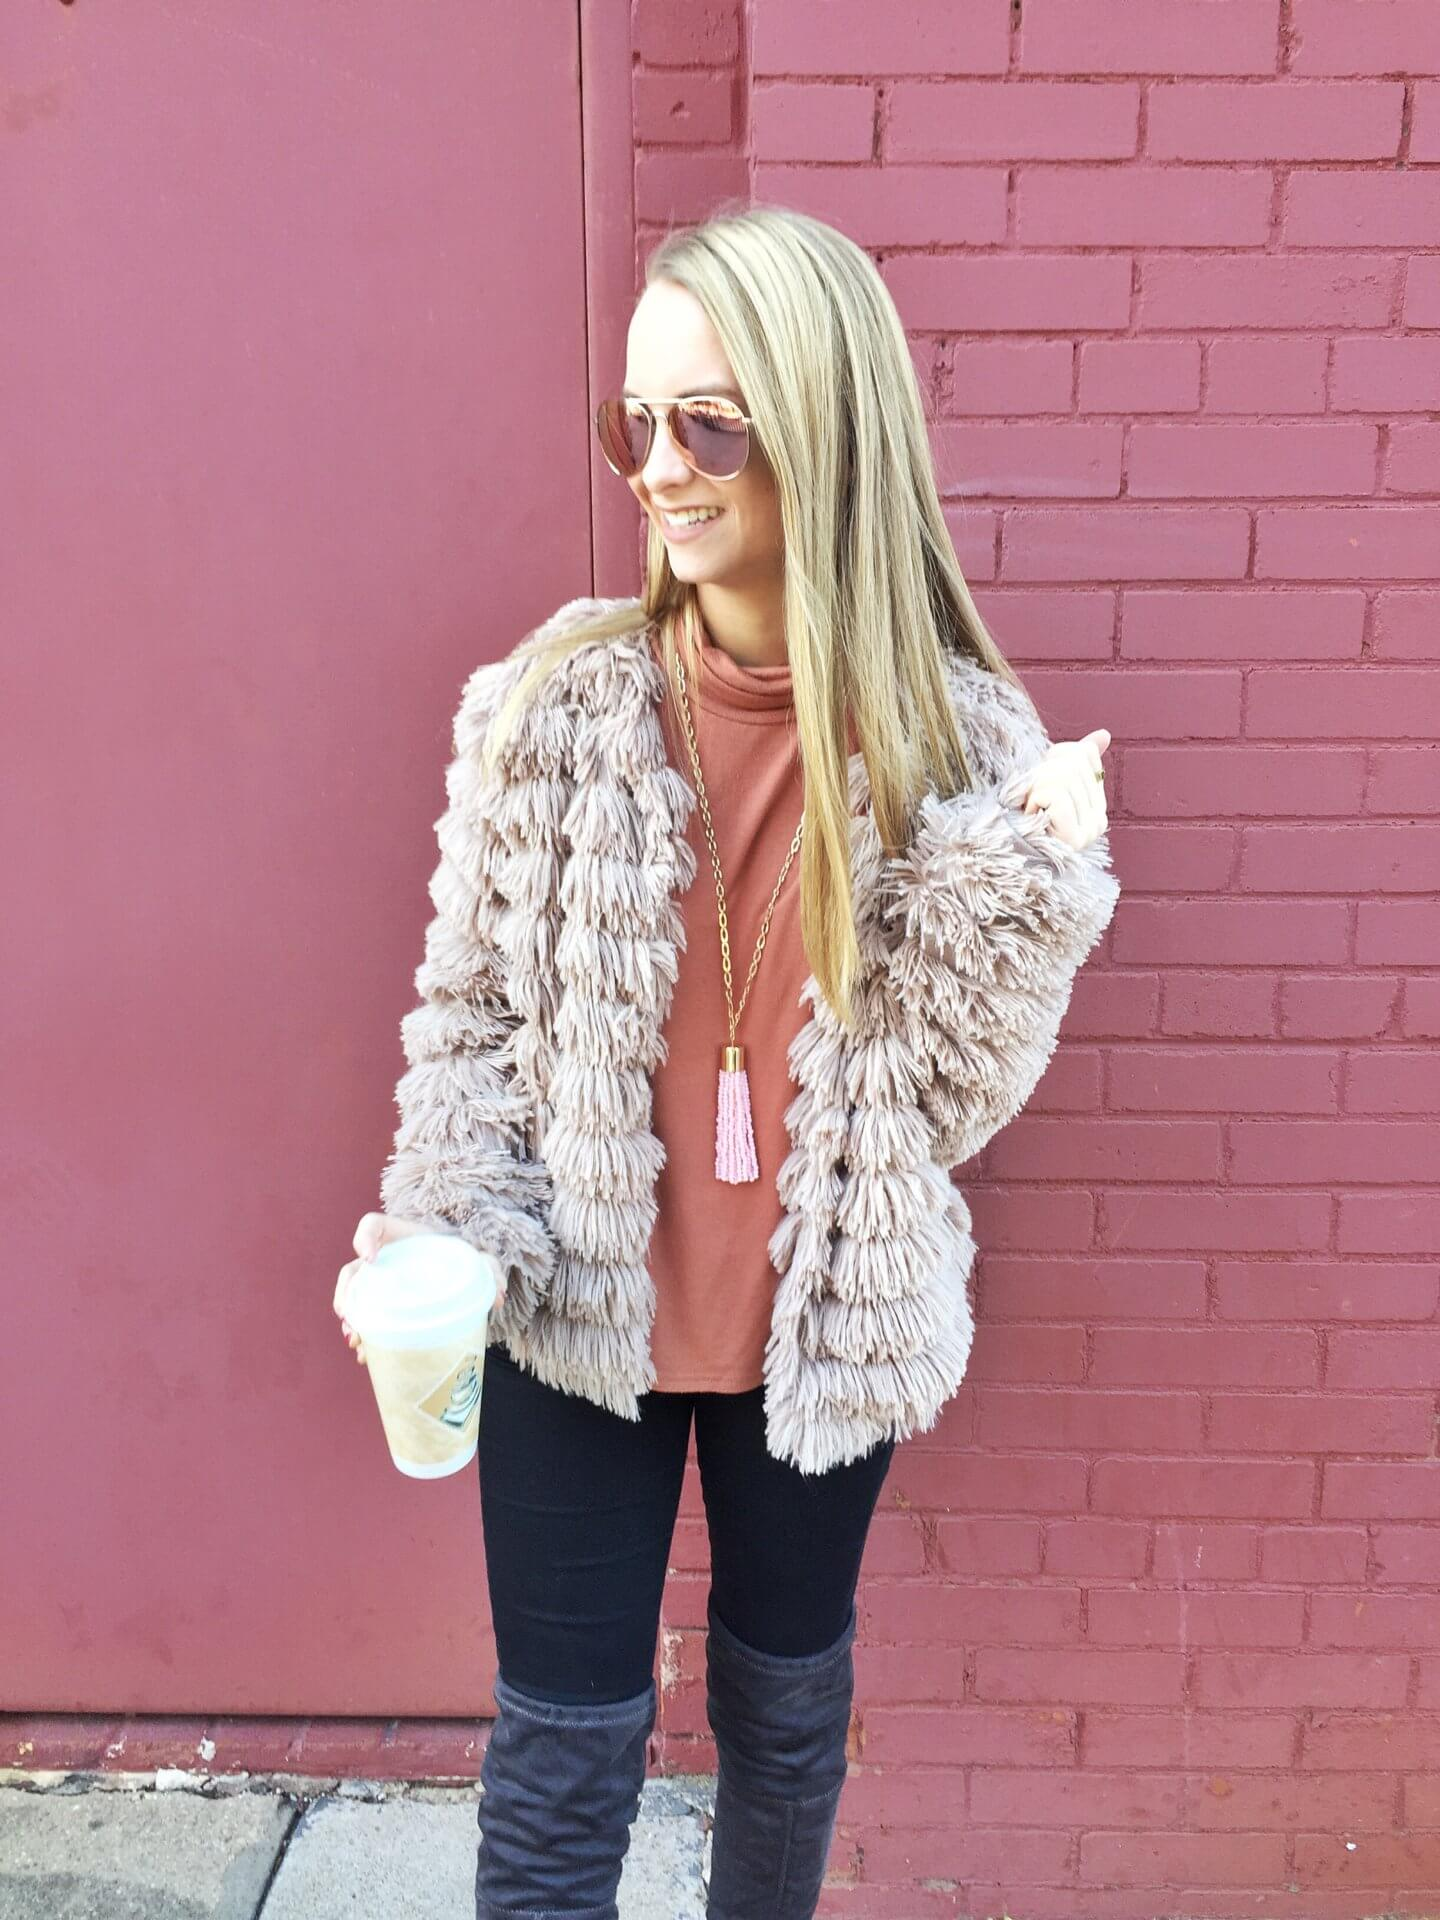 A travel guide for a girls trip in Waco, Texas. What to do for 24 hours in Waco Texas. The Blonder Life